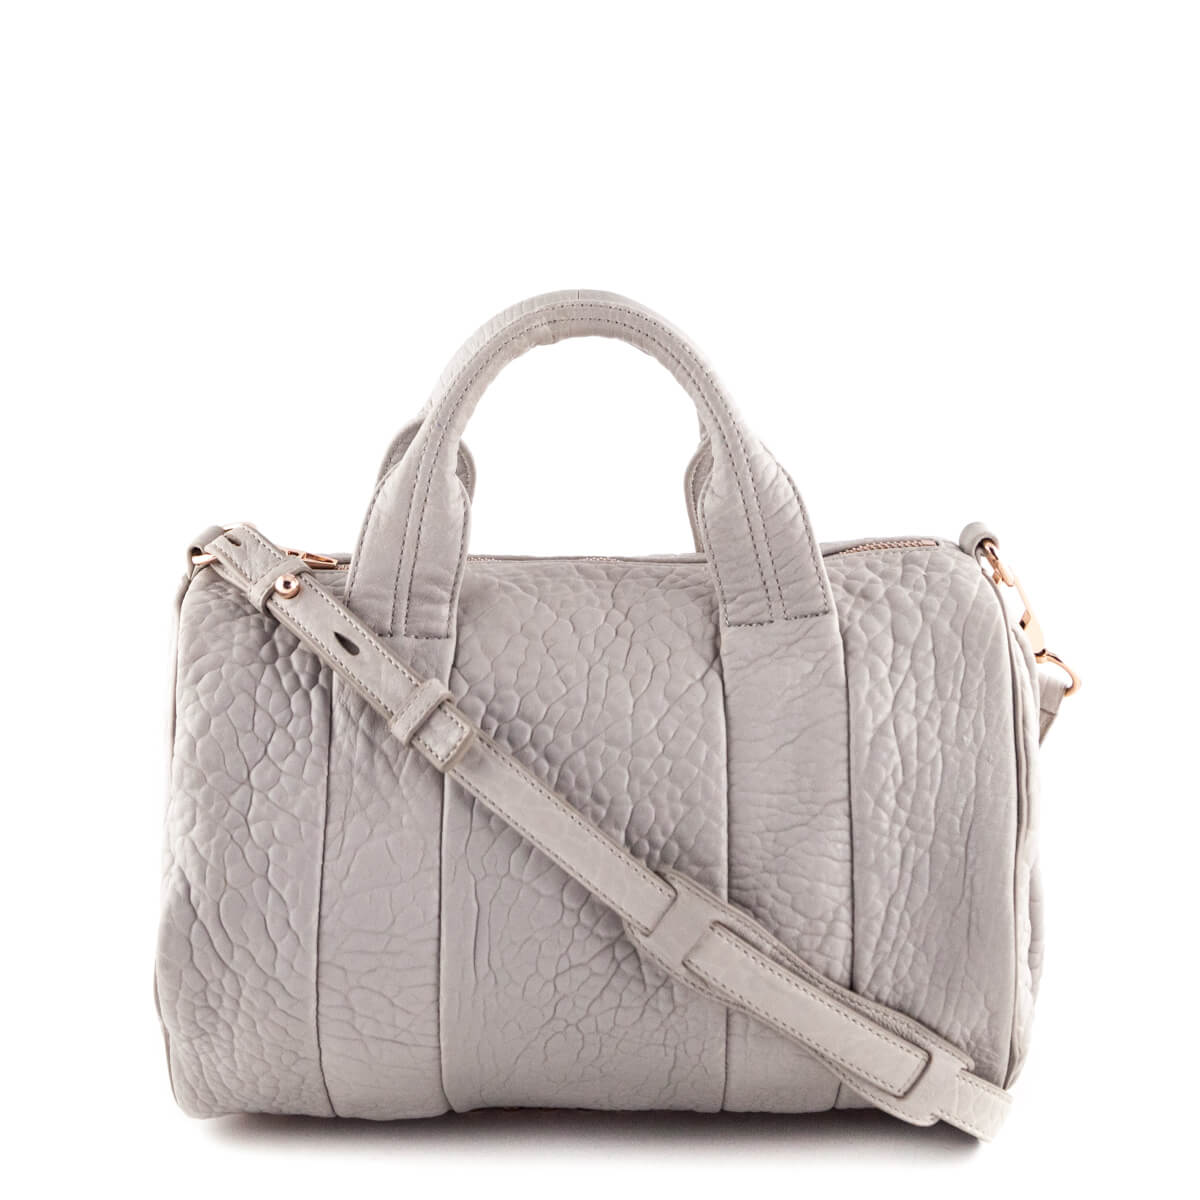 Alexander Wang Gray Rocco with Rose Gold Hardware - Preowned Designer